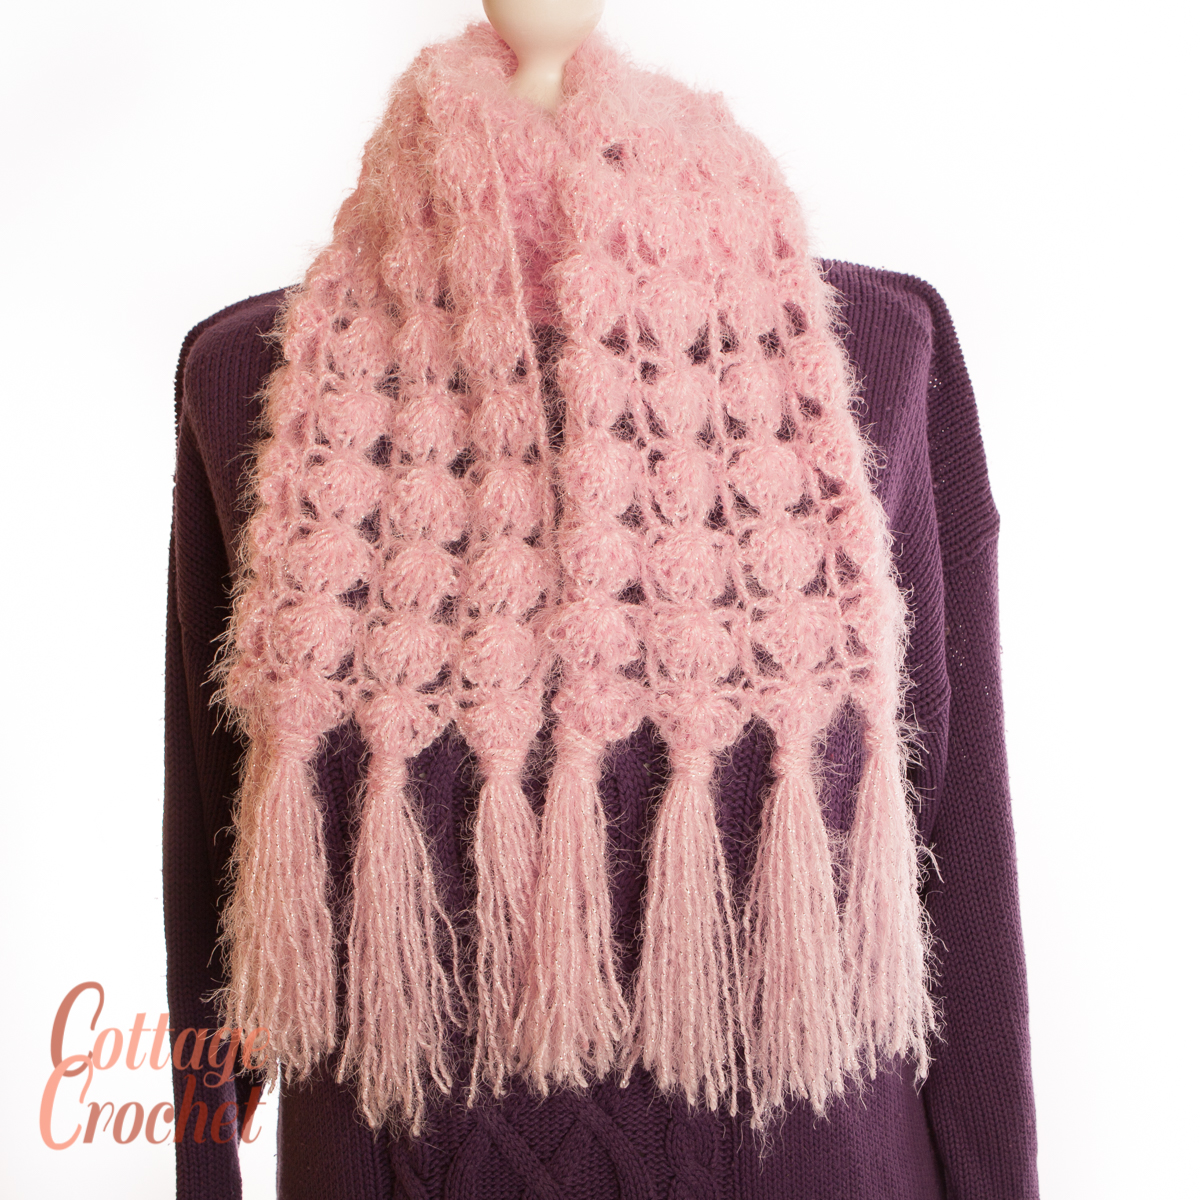 Soft Pink Scarf crochet in a fluffy yarn with a slight sparkle and